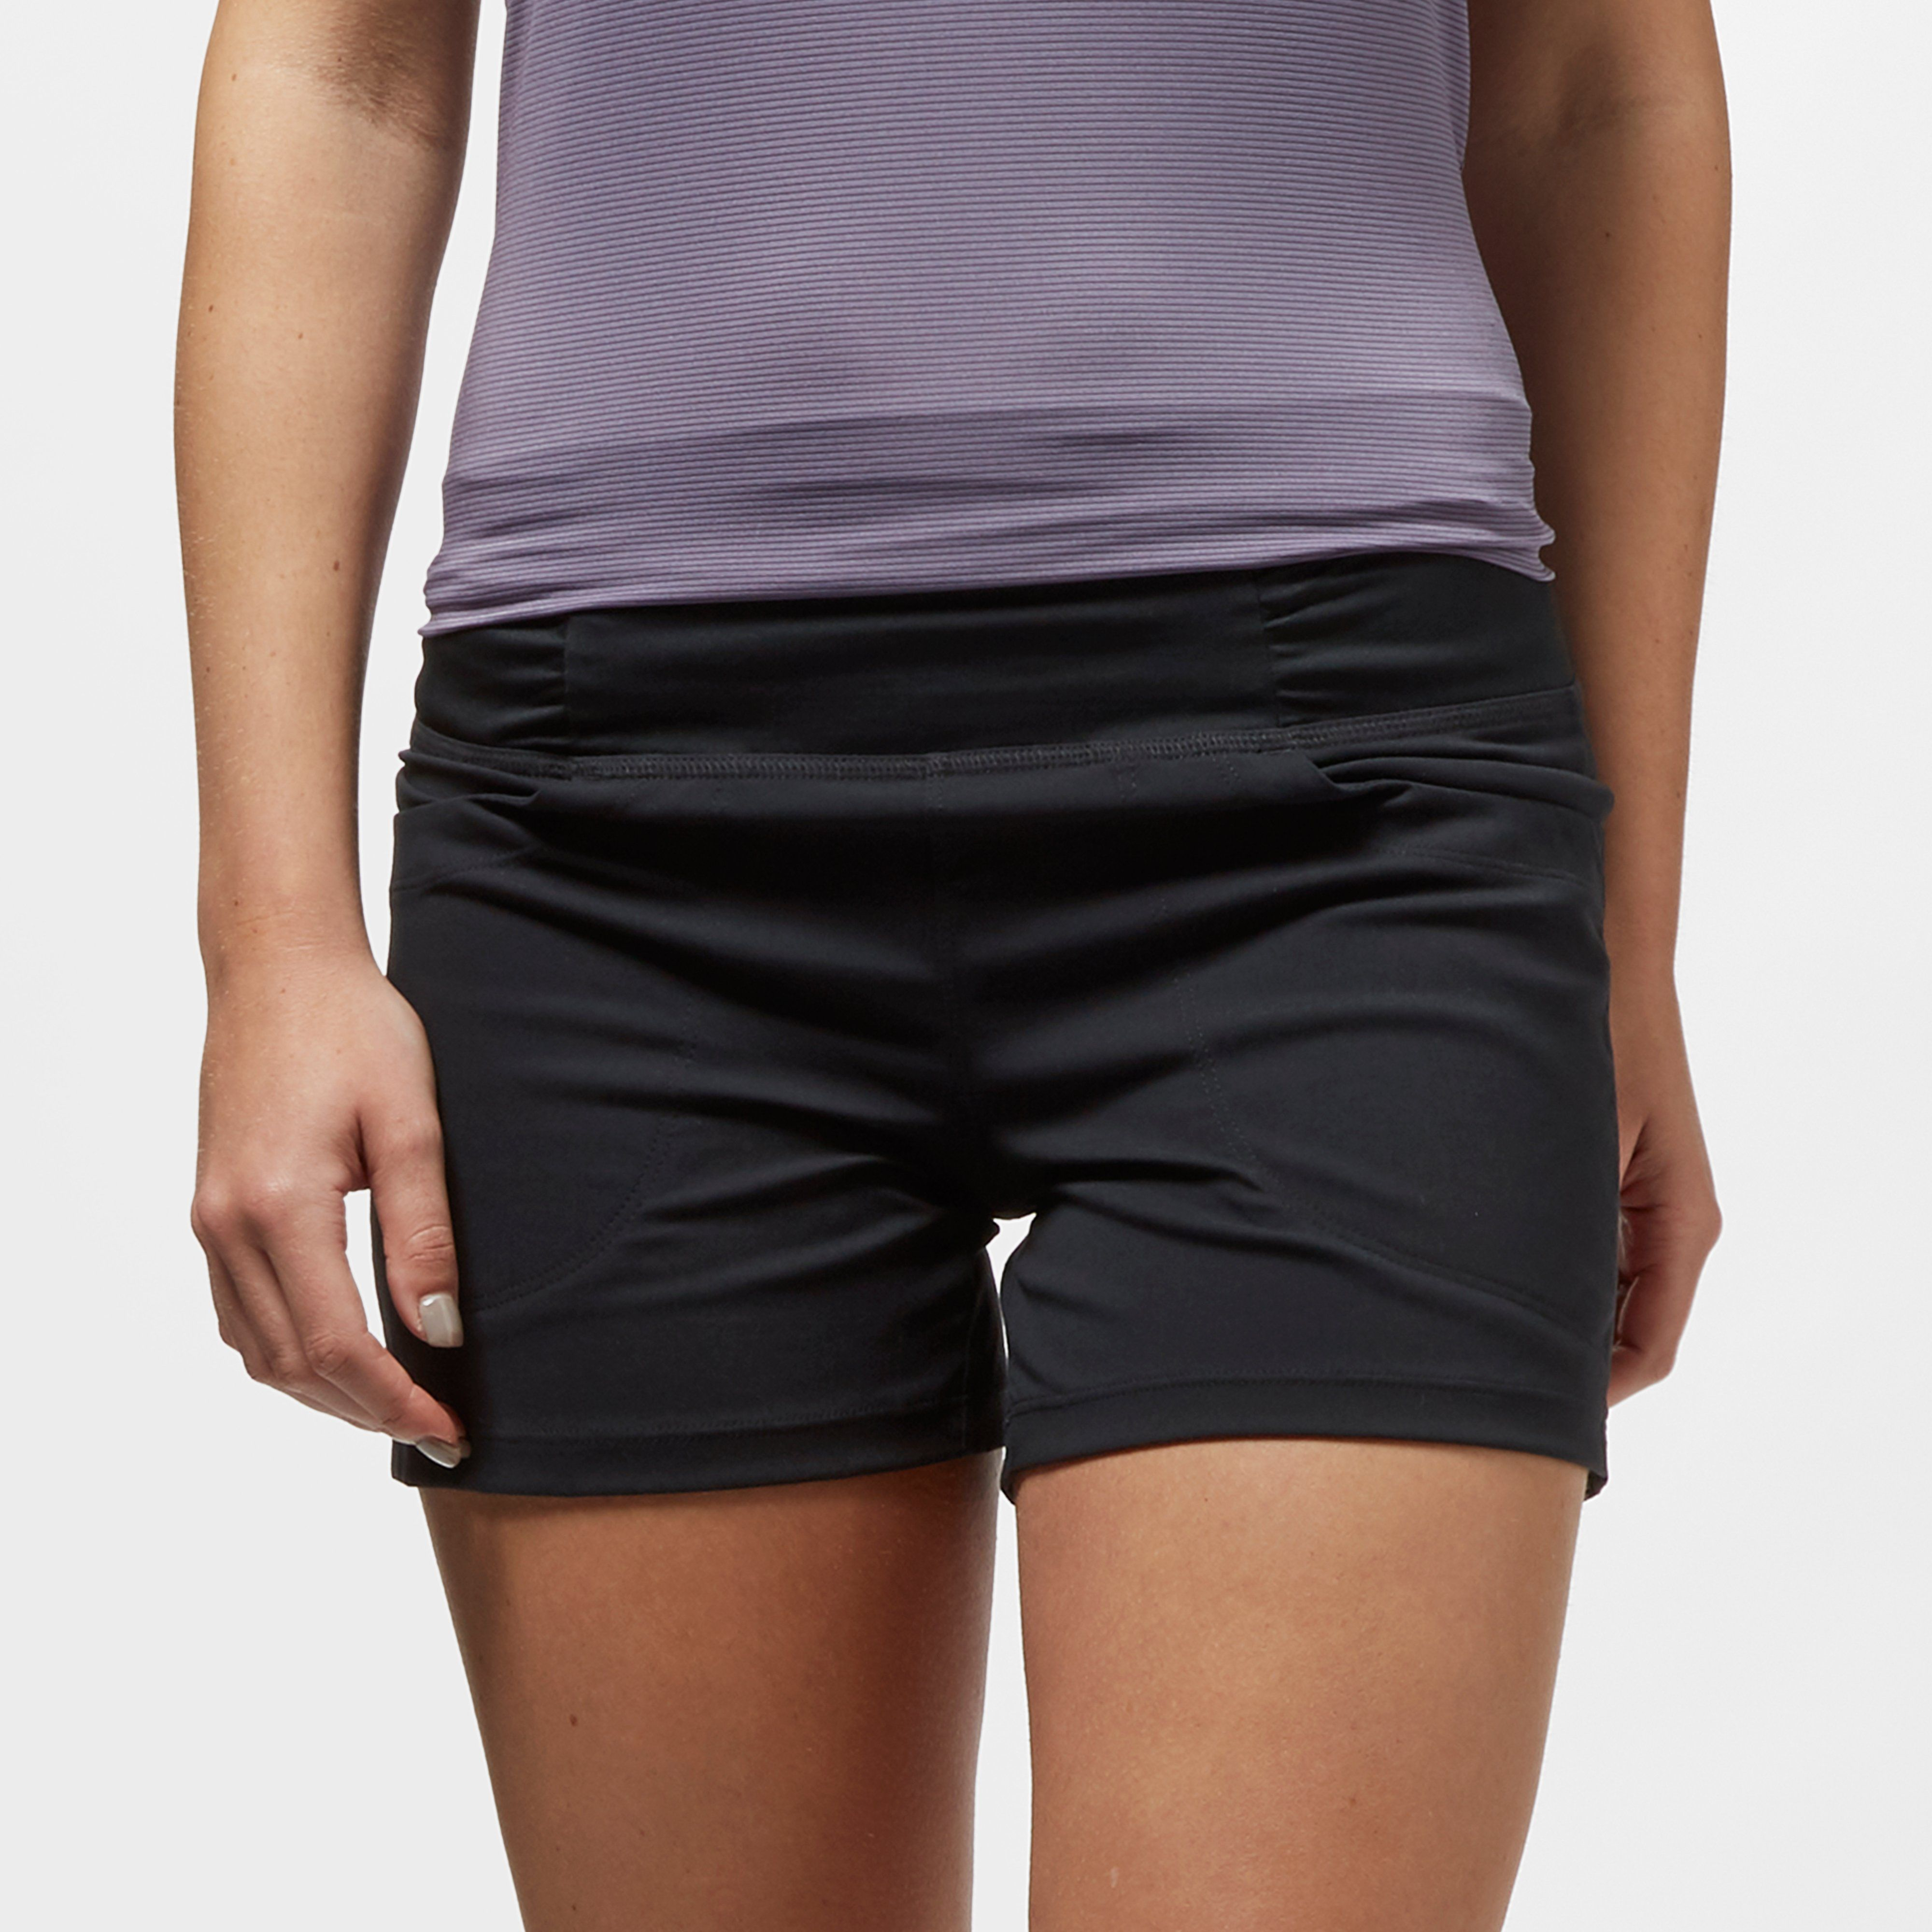 MOUNTAIN HARDWEAR Women's Dynama™ Shorts